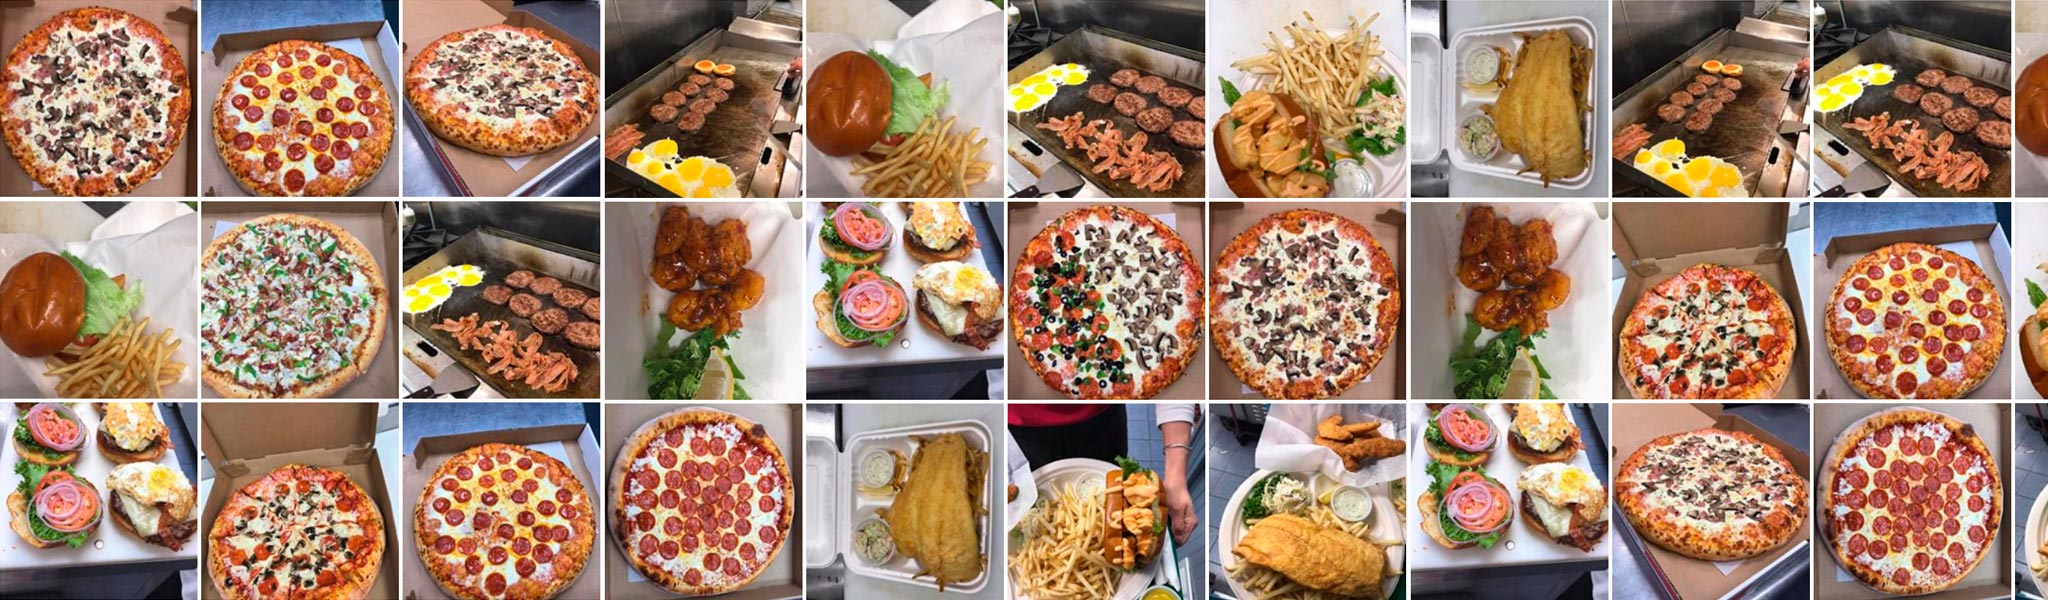 burgers pizzas subs seafood